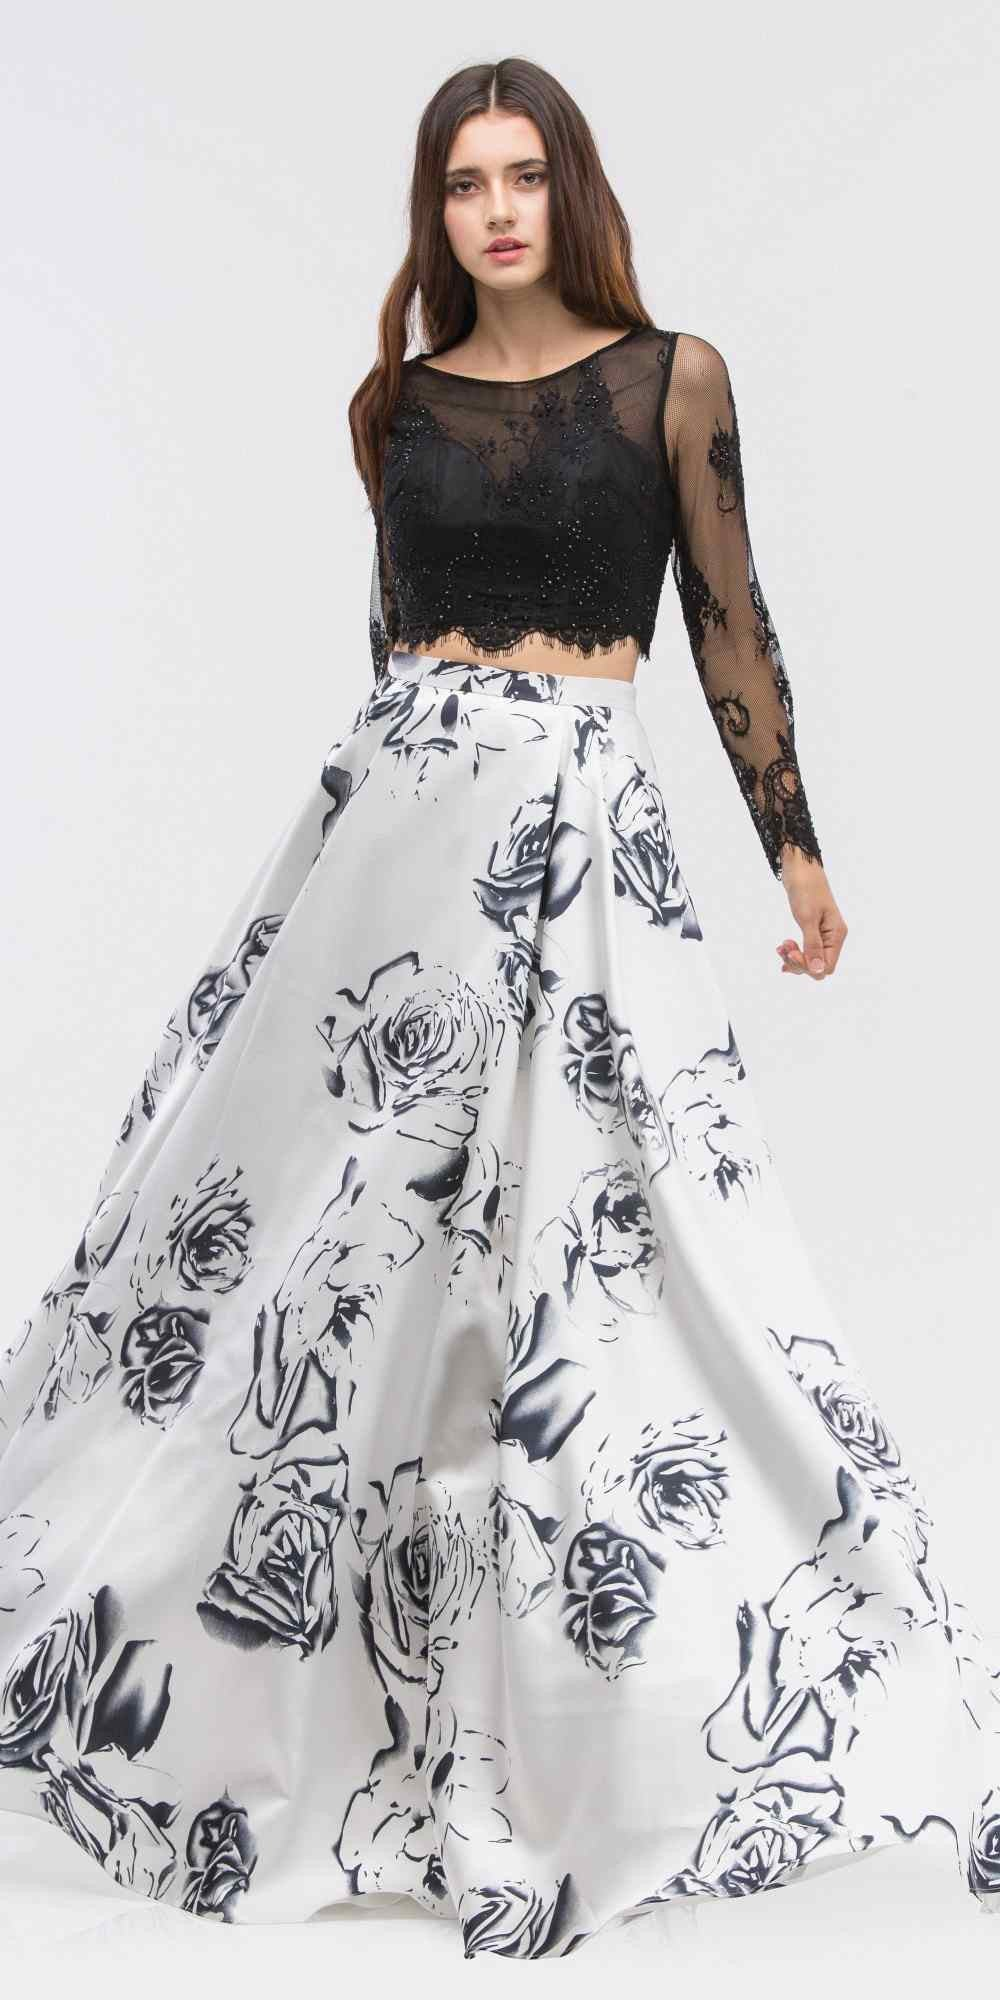 be71e55b59b ... Black Long Sleeves Top Off White Print Skirt Two-Piece Prom Gown ...